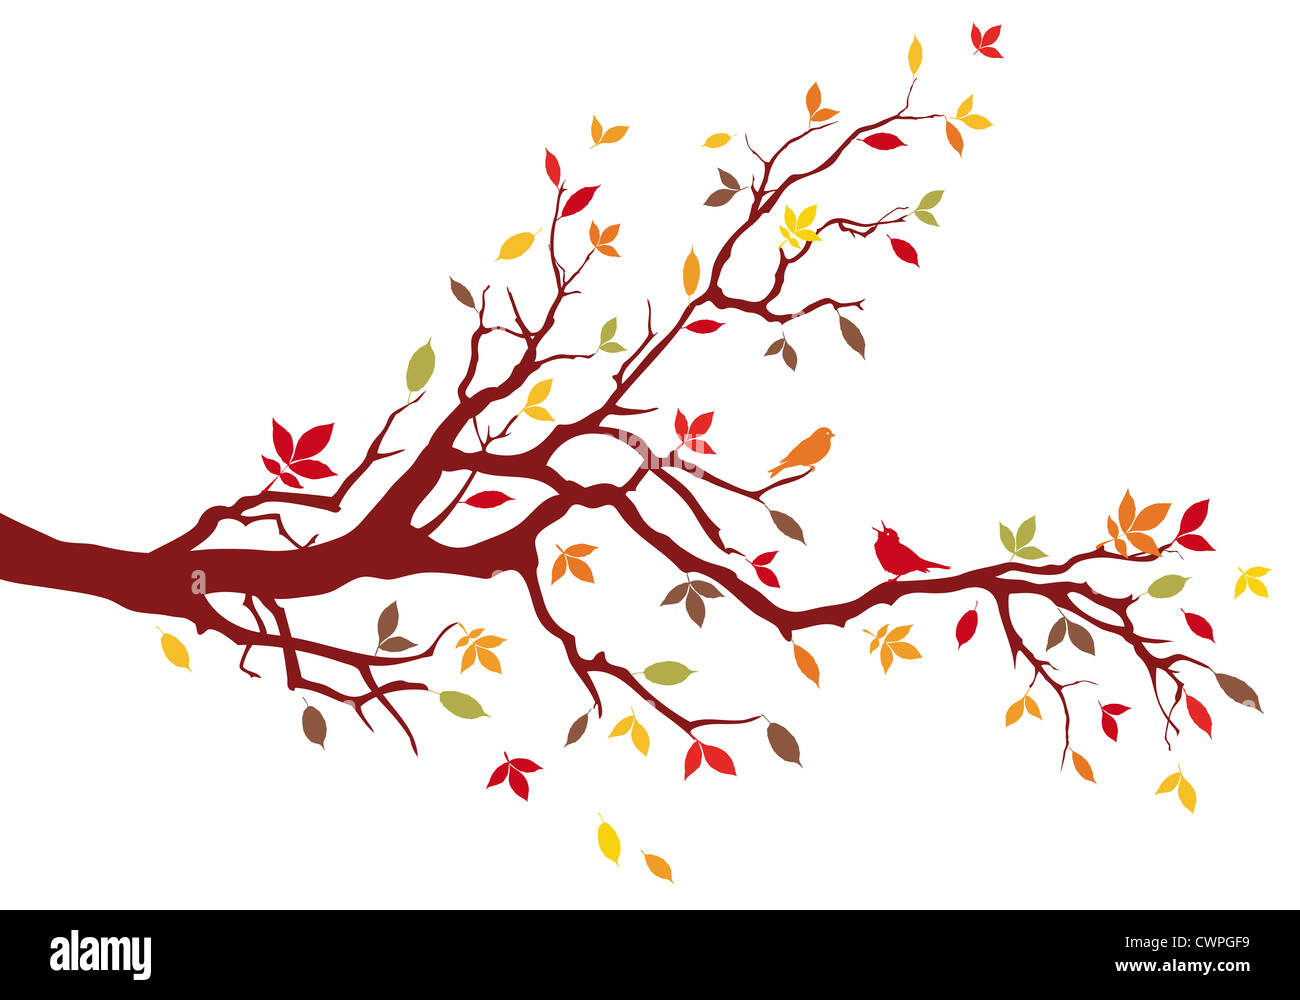 Autumn tree branch with colorful leaves, background illustration - Stock Image